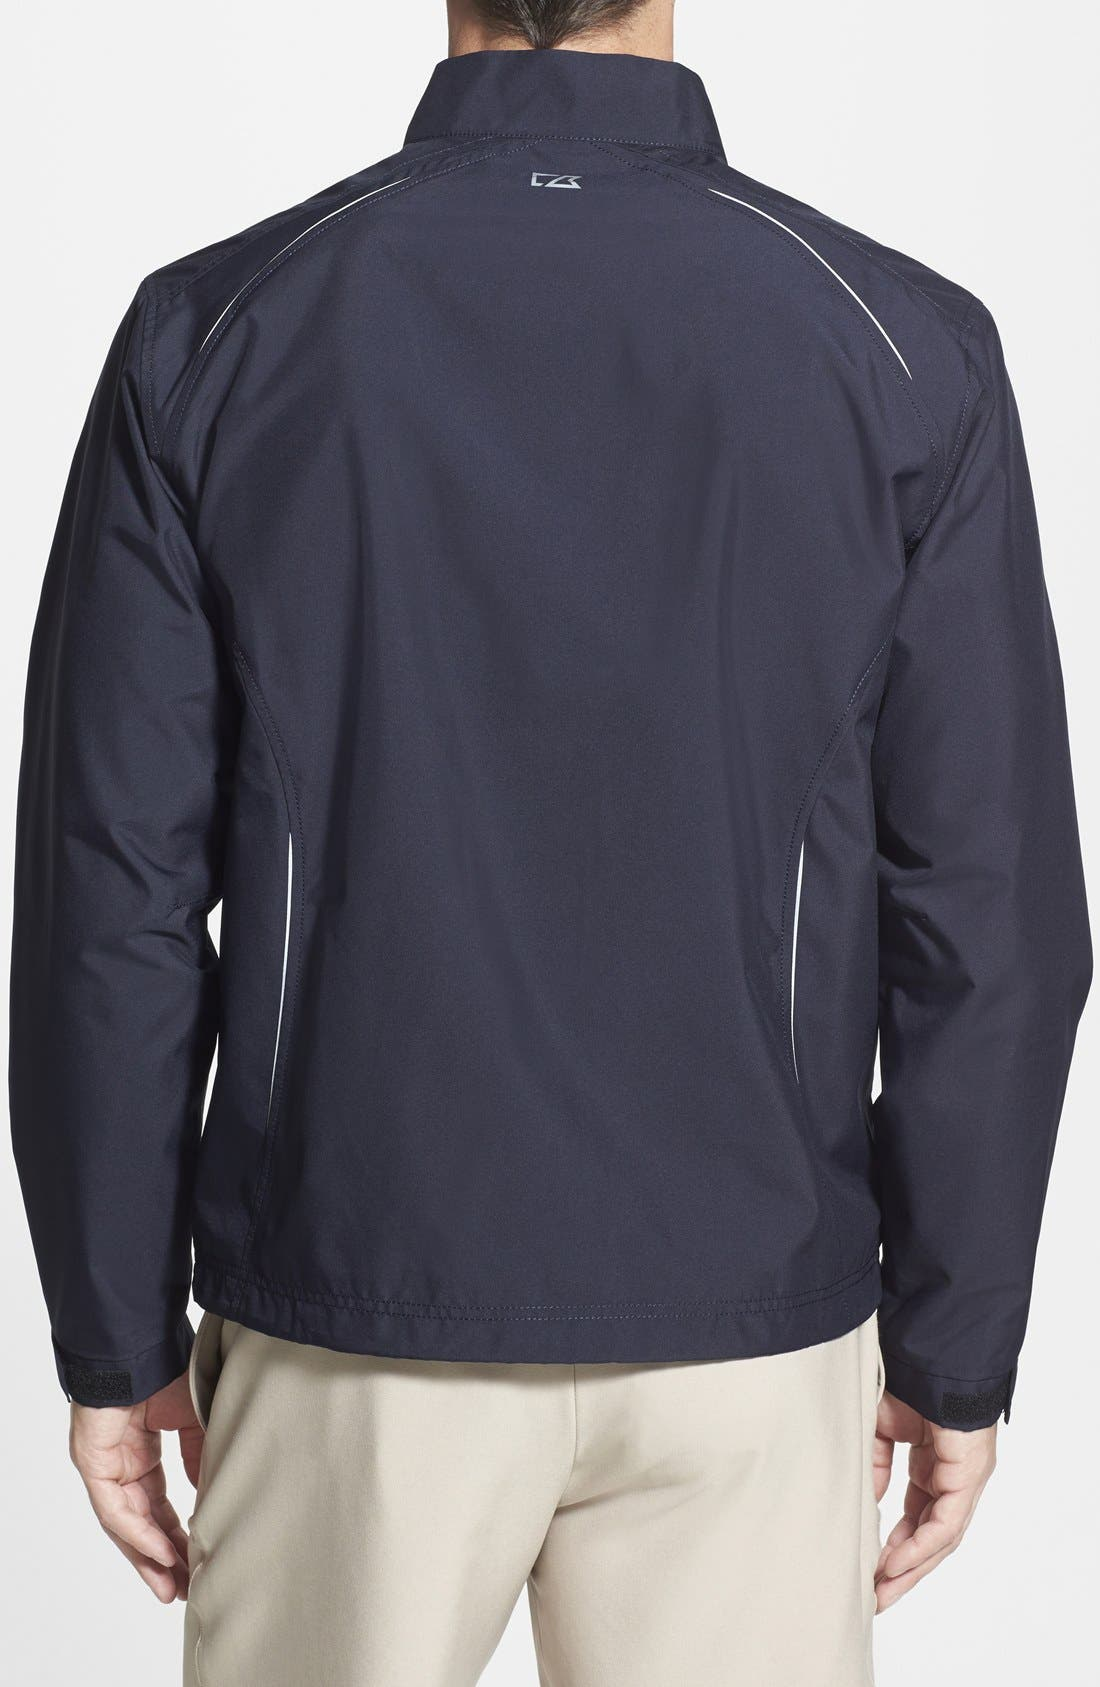 Chicago Bears - Beacon WeatherTec Wind & Water Resistant Jacket,                             Alternate thumbnail 2, color,                             420